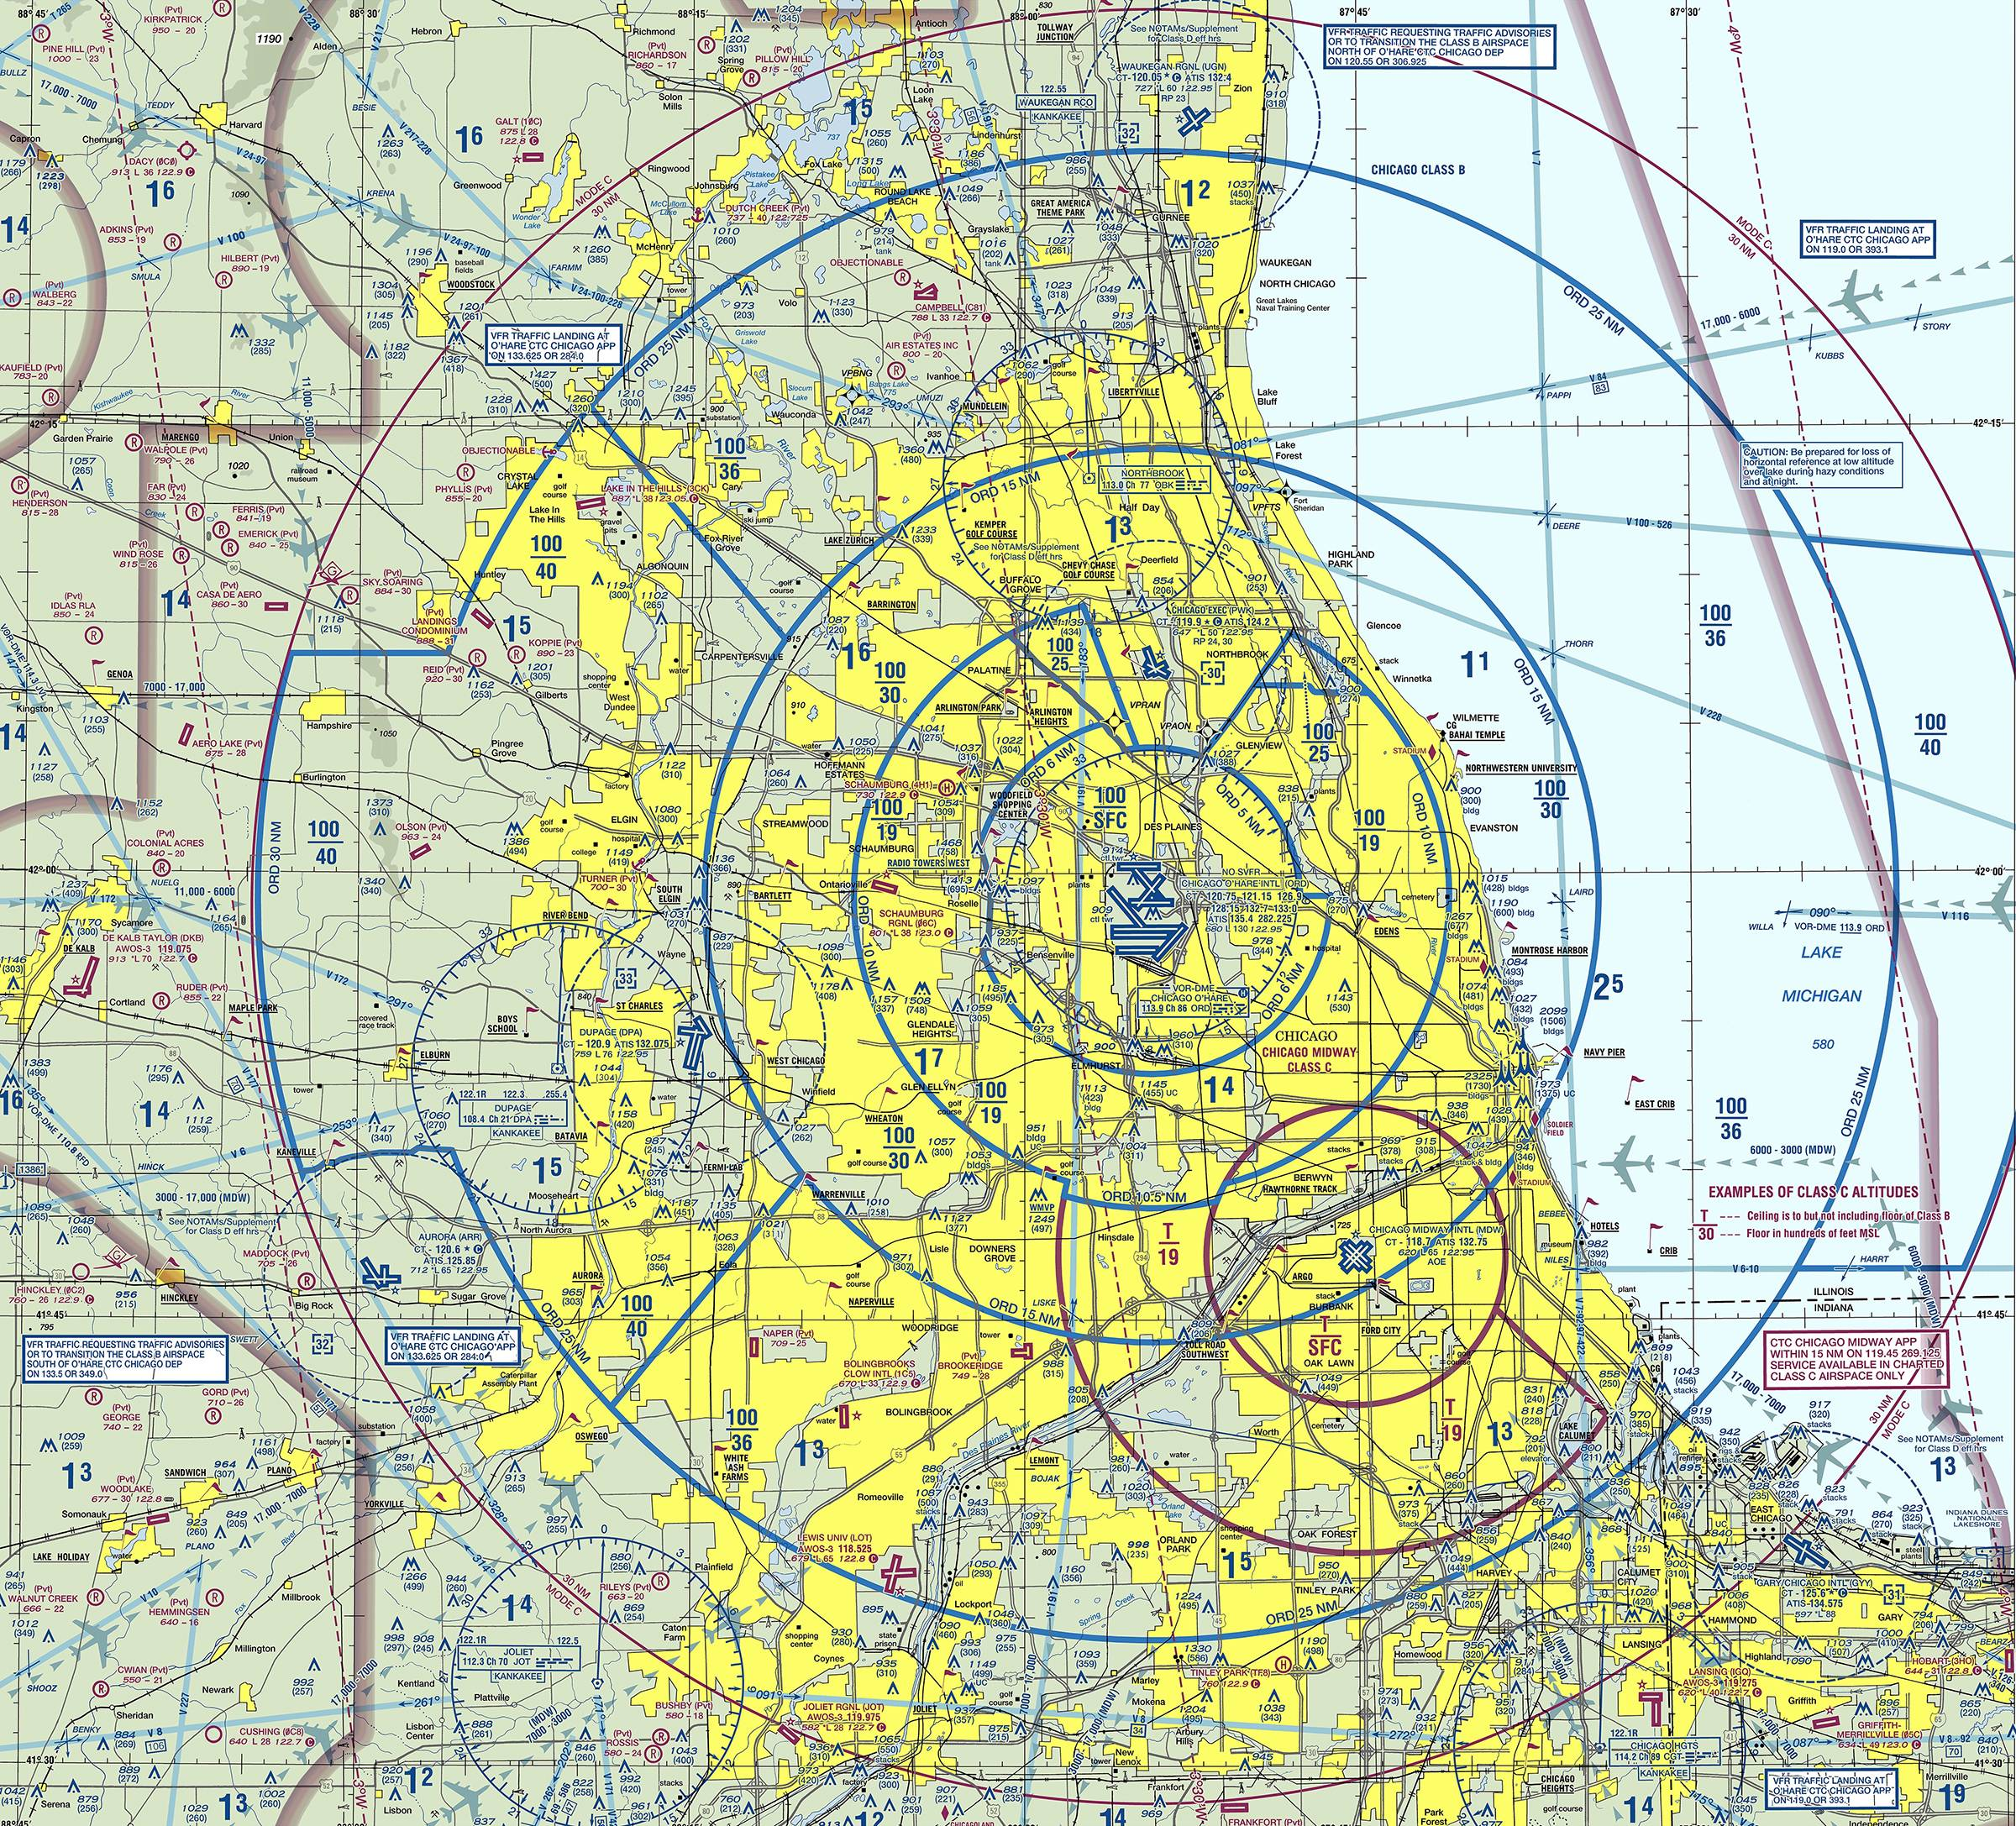 This Terminal Area Chart helps those operating drones know where they can and cannot fly safely. The chart, of the Chicago area including O'Hare and Midway airports, shows the different types of airspace, landmarks, terrain elevations, navigation routes and navigation aids.